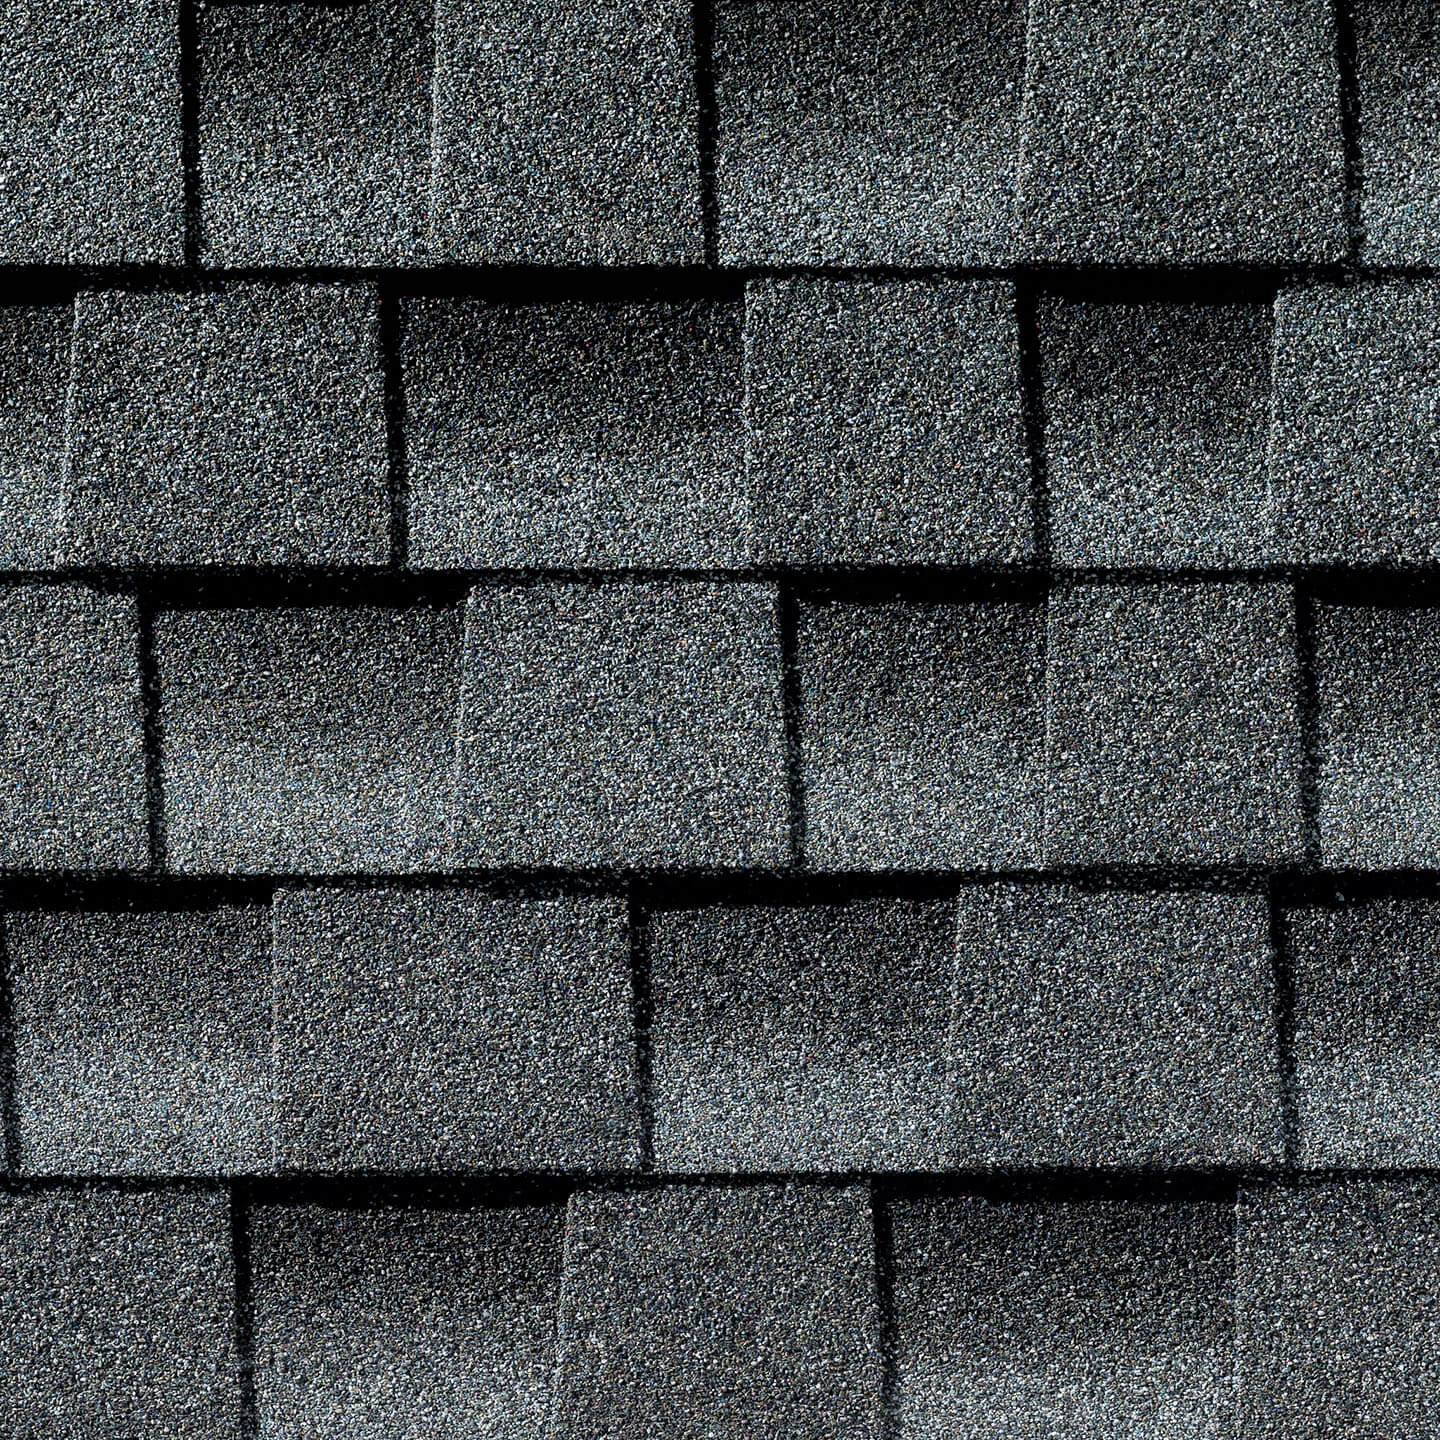 Timberline Pewter Gray shingle sample